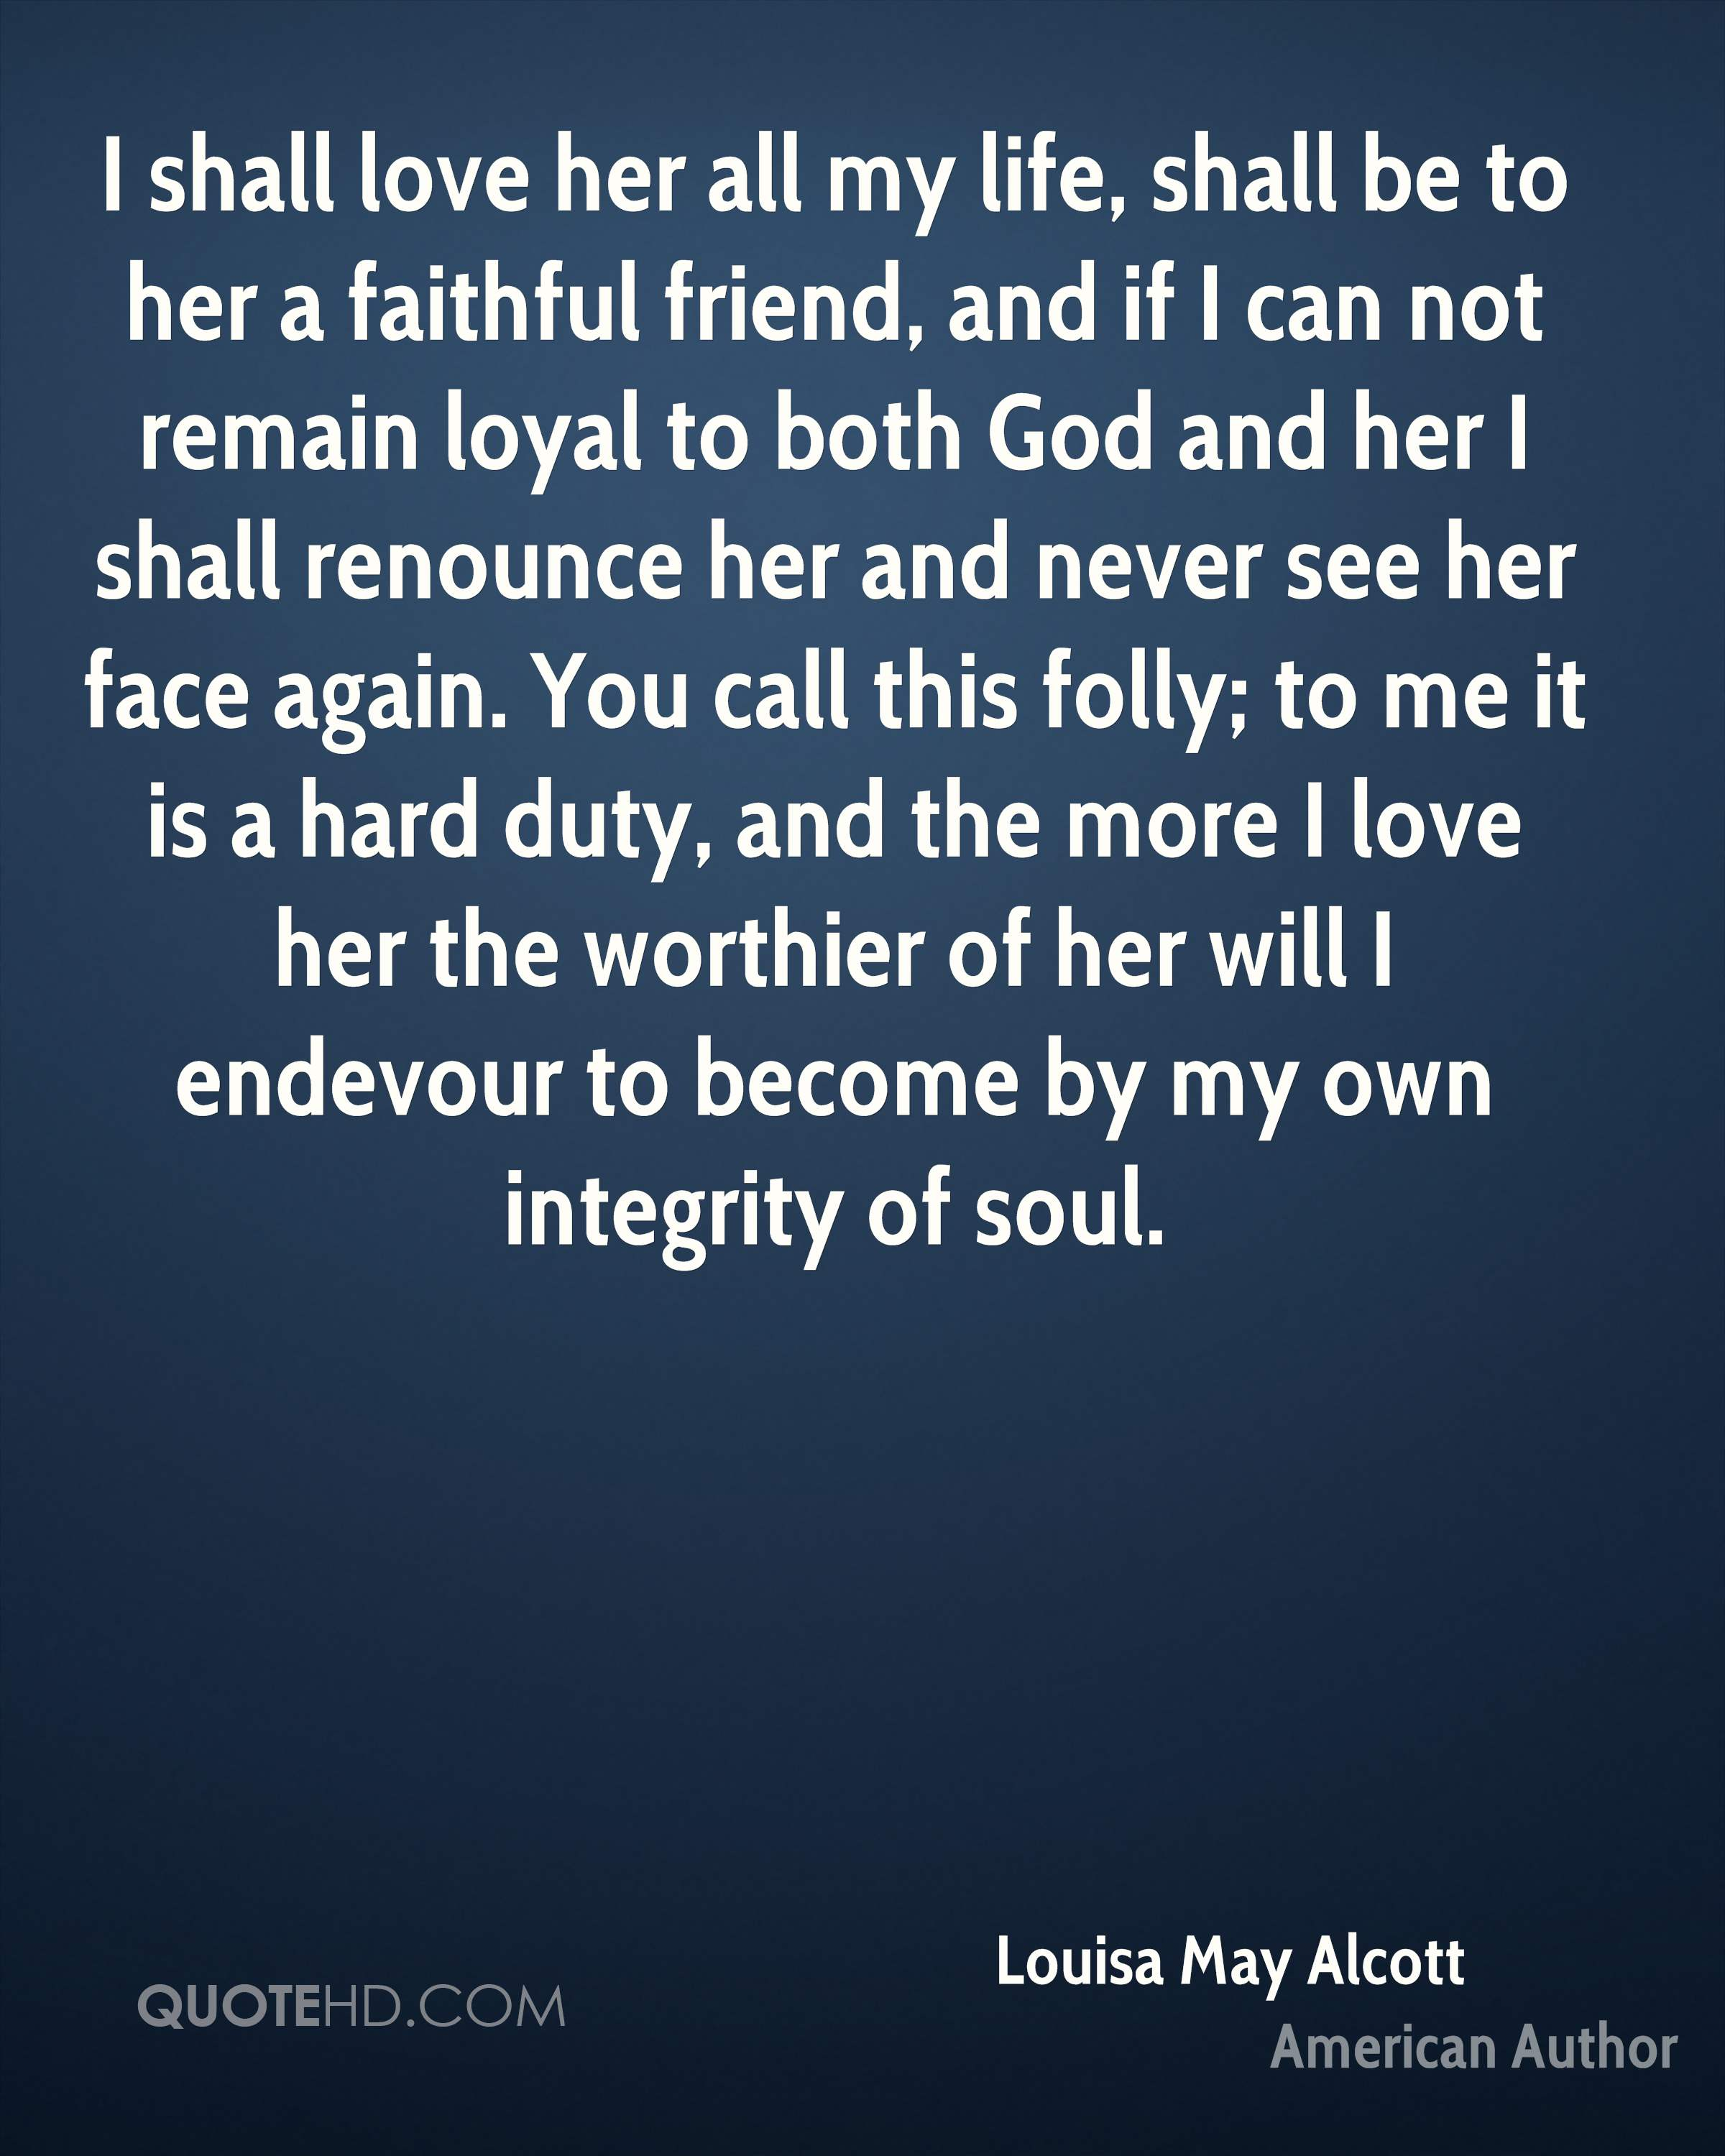 Love Of My Life Quotes For Her Louisa May Alcott Quotes  Quotehd